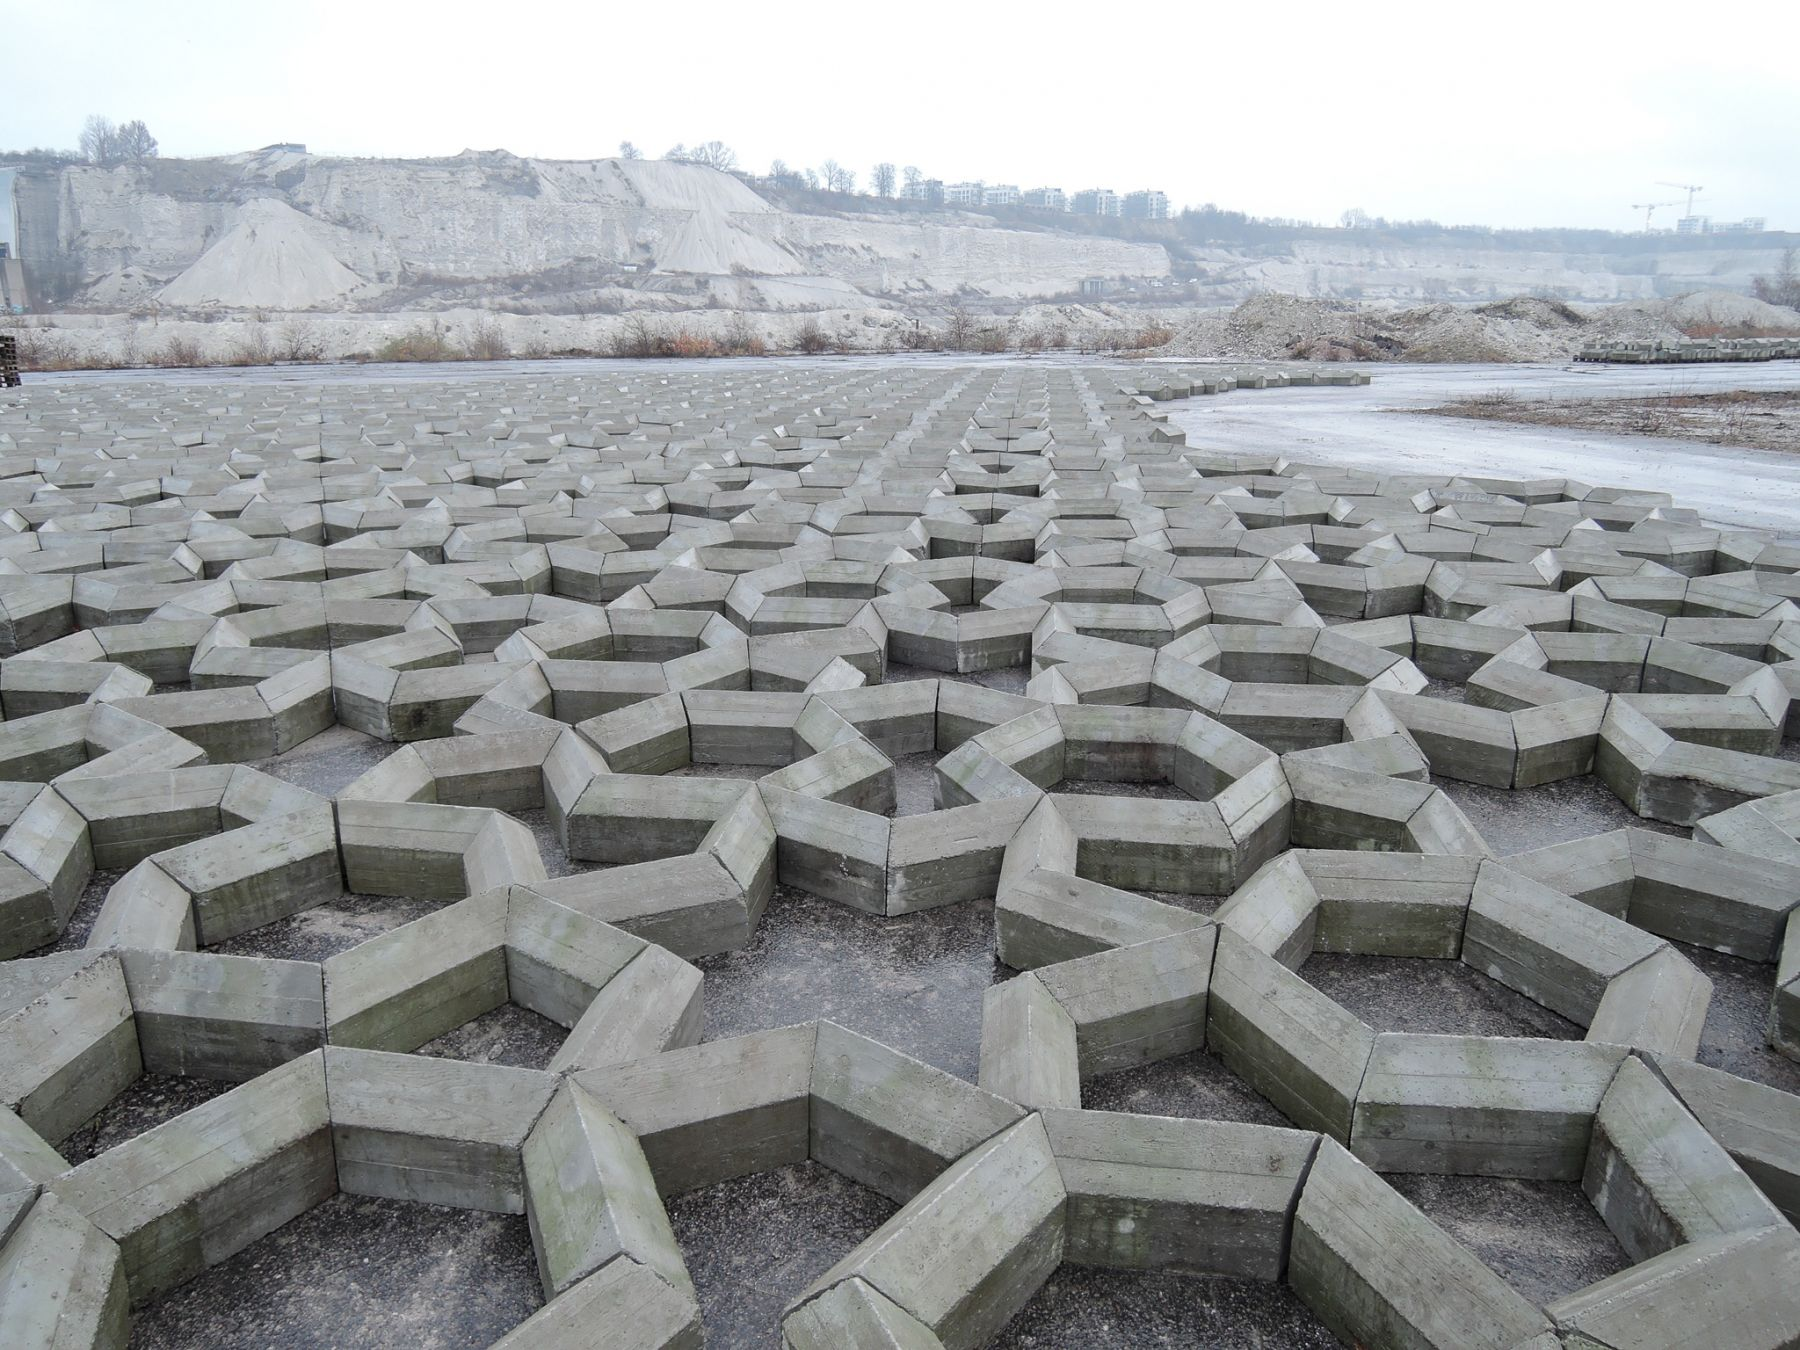 Mike Nelson, Imperfect geometry for a concrete quarry, 2016.